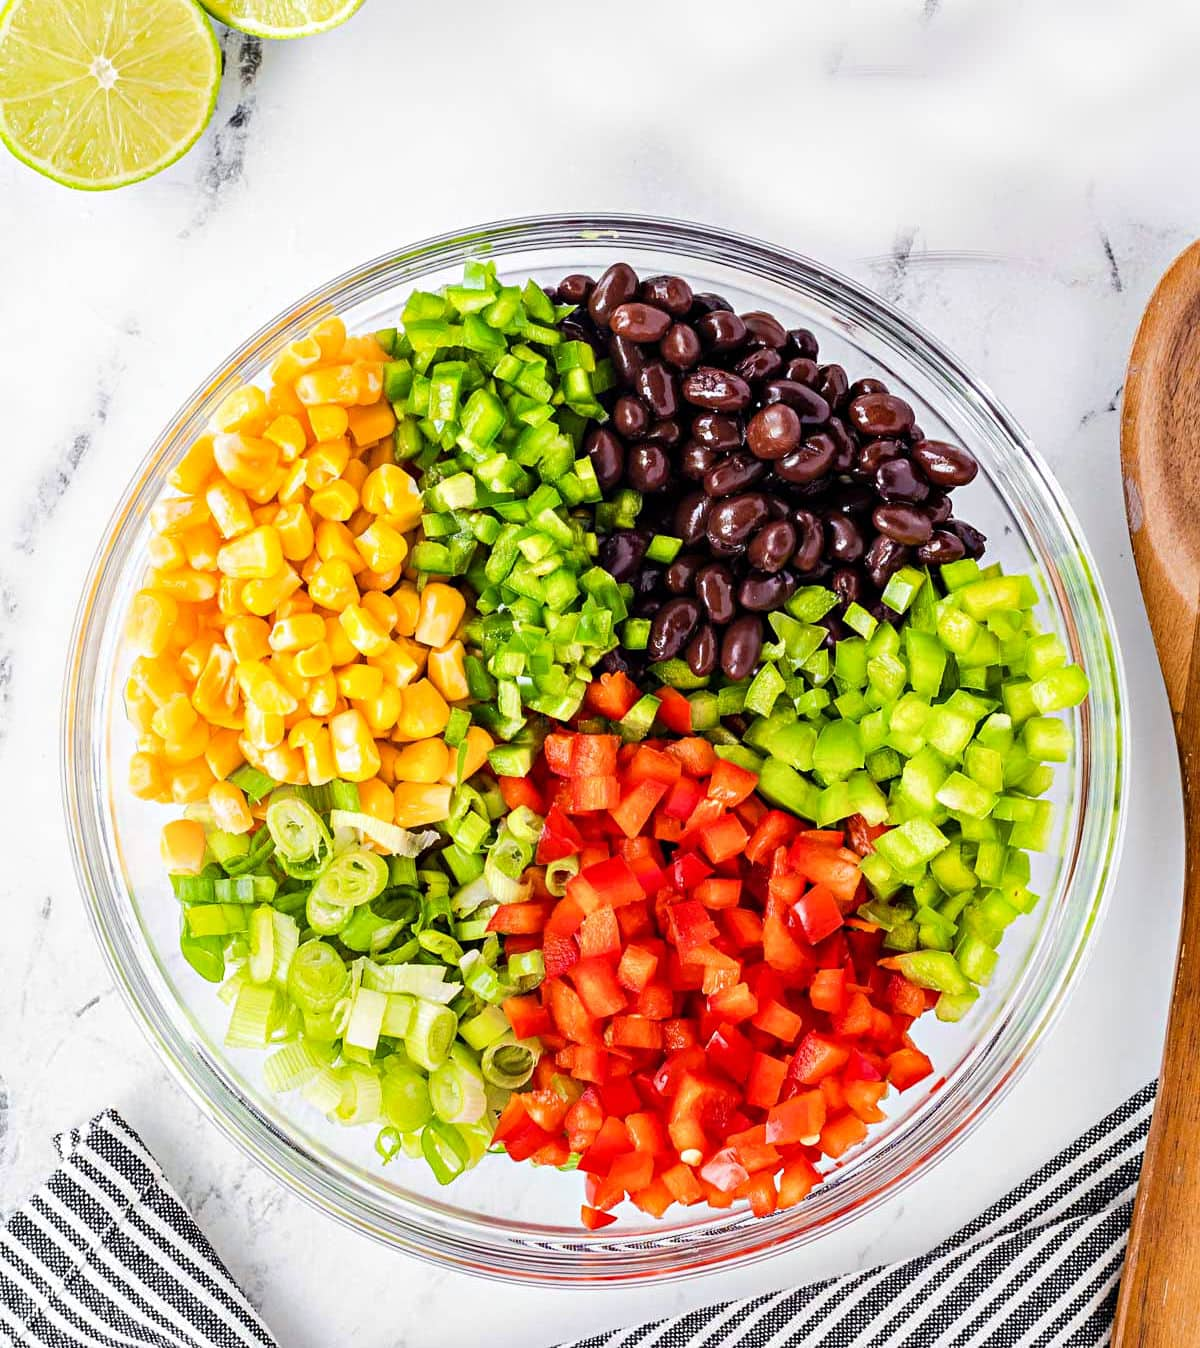 black bean corn salsa ingredients prepped and in a clear glass bowl ready to be mixed together.